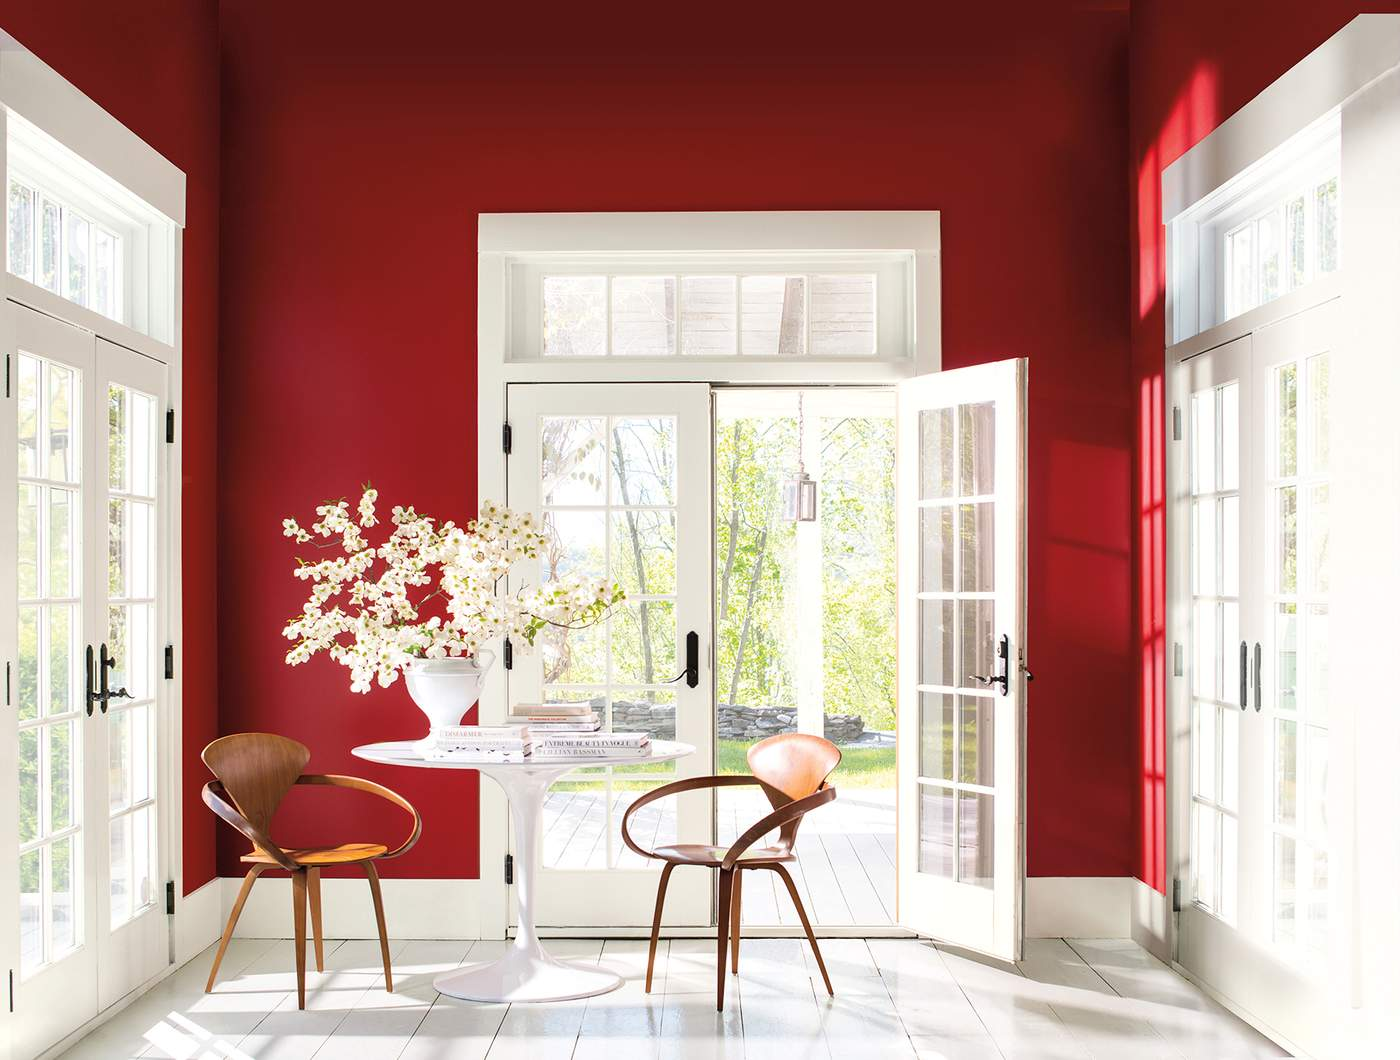 According To Andrea Magno, The Hottest Hue For Homes In 2018 Is A Bold,  Vibrant Red Shown In This Sunroom. Photography Courtesy Of Benjamin Moore